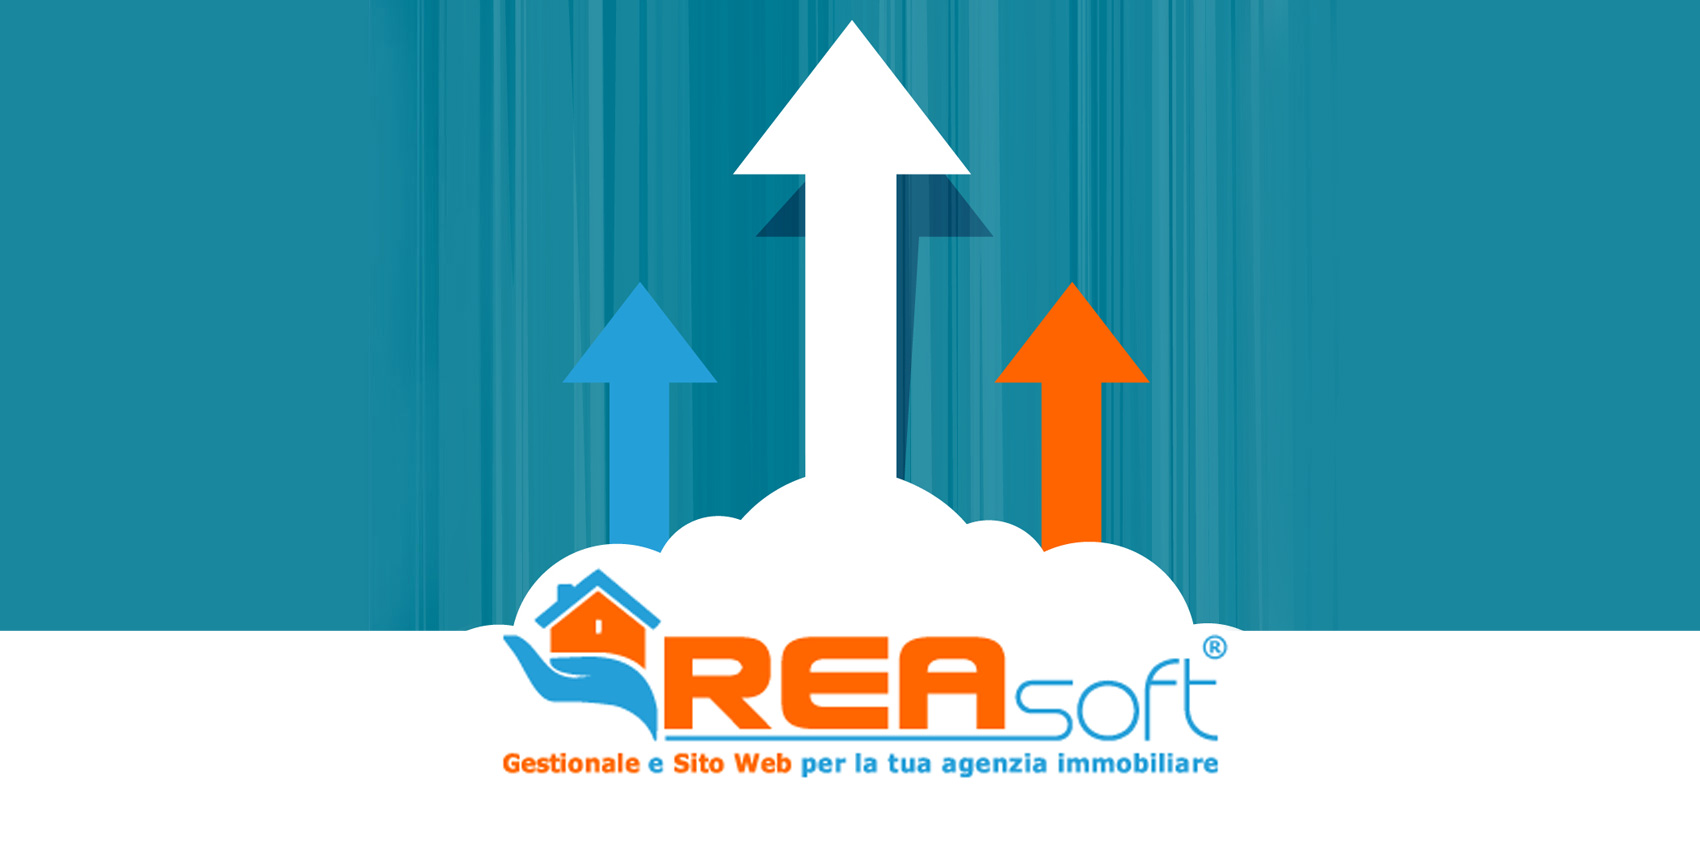 reasoft gestionale immobiliare